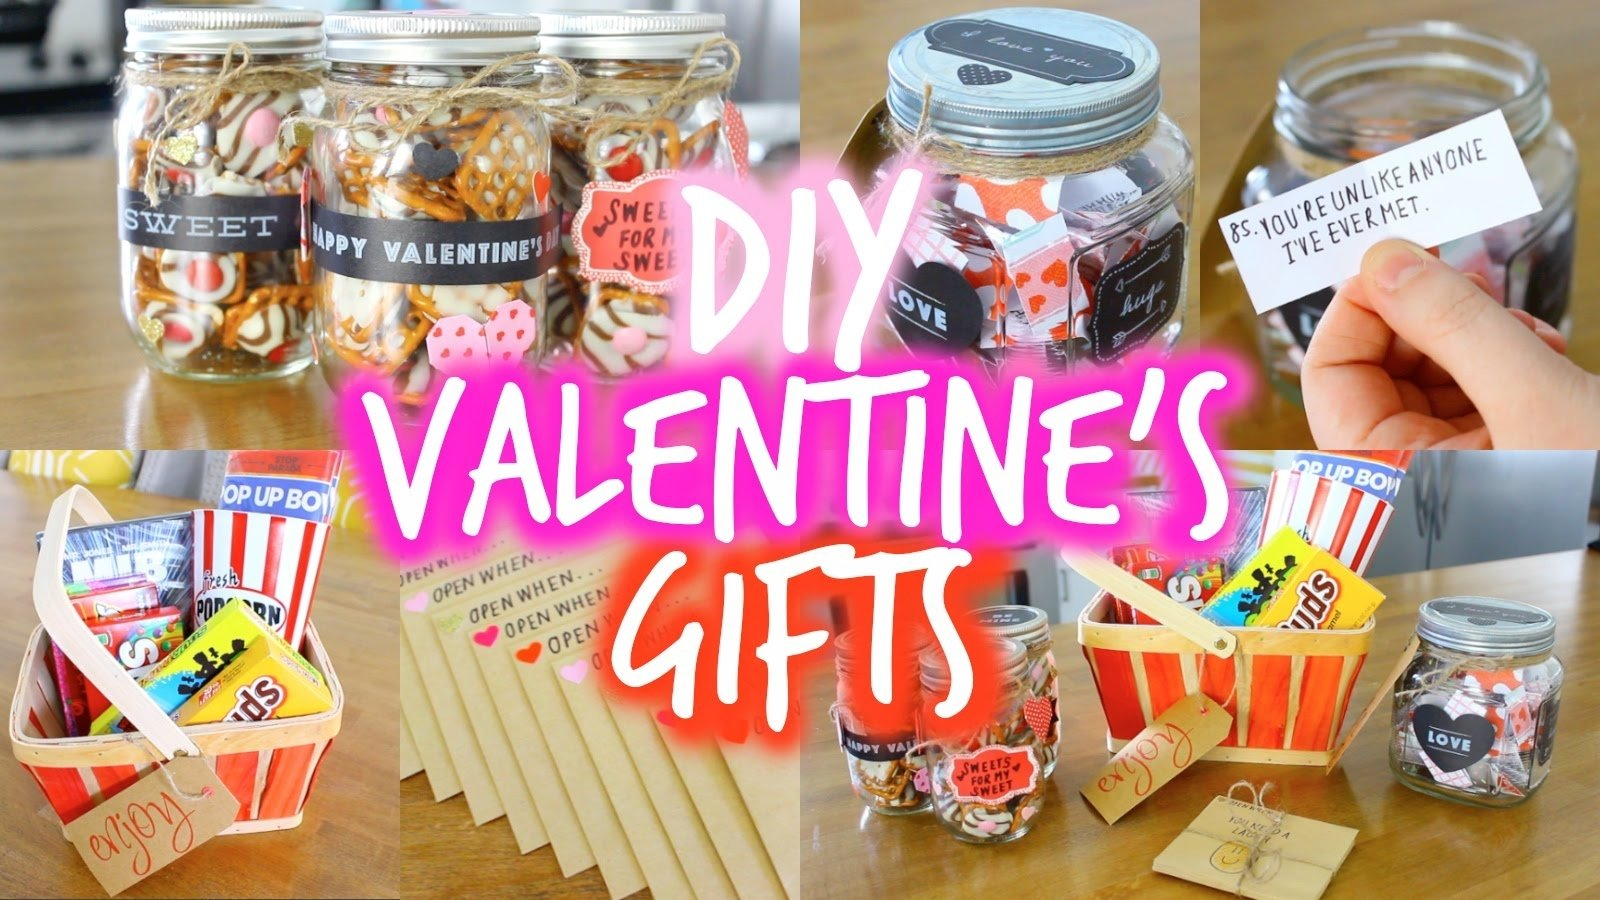 10 Unique Creative Valentines Day Ideas For Him